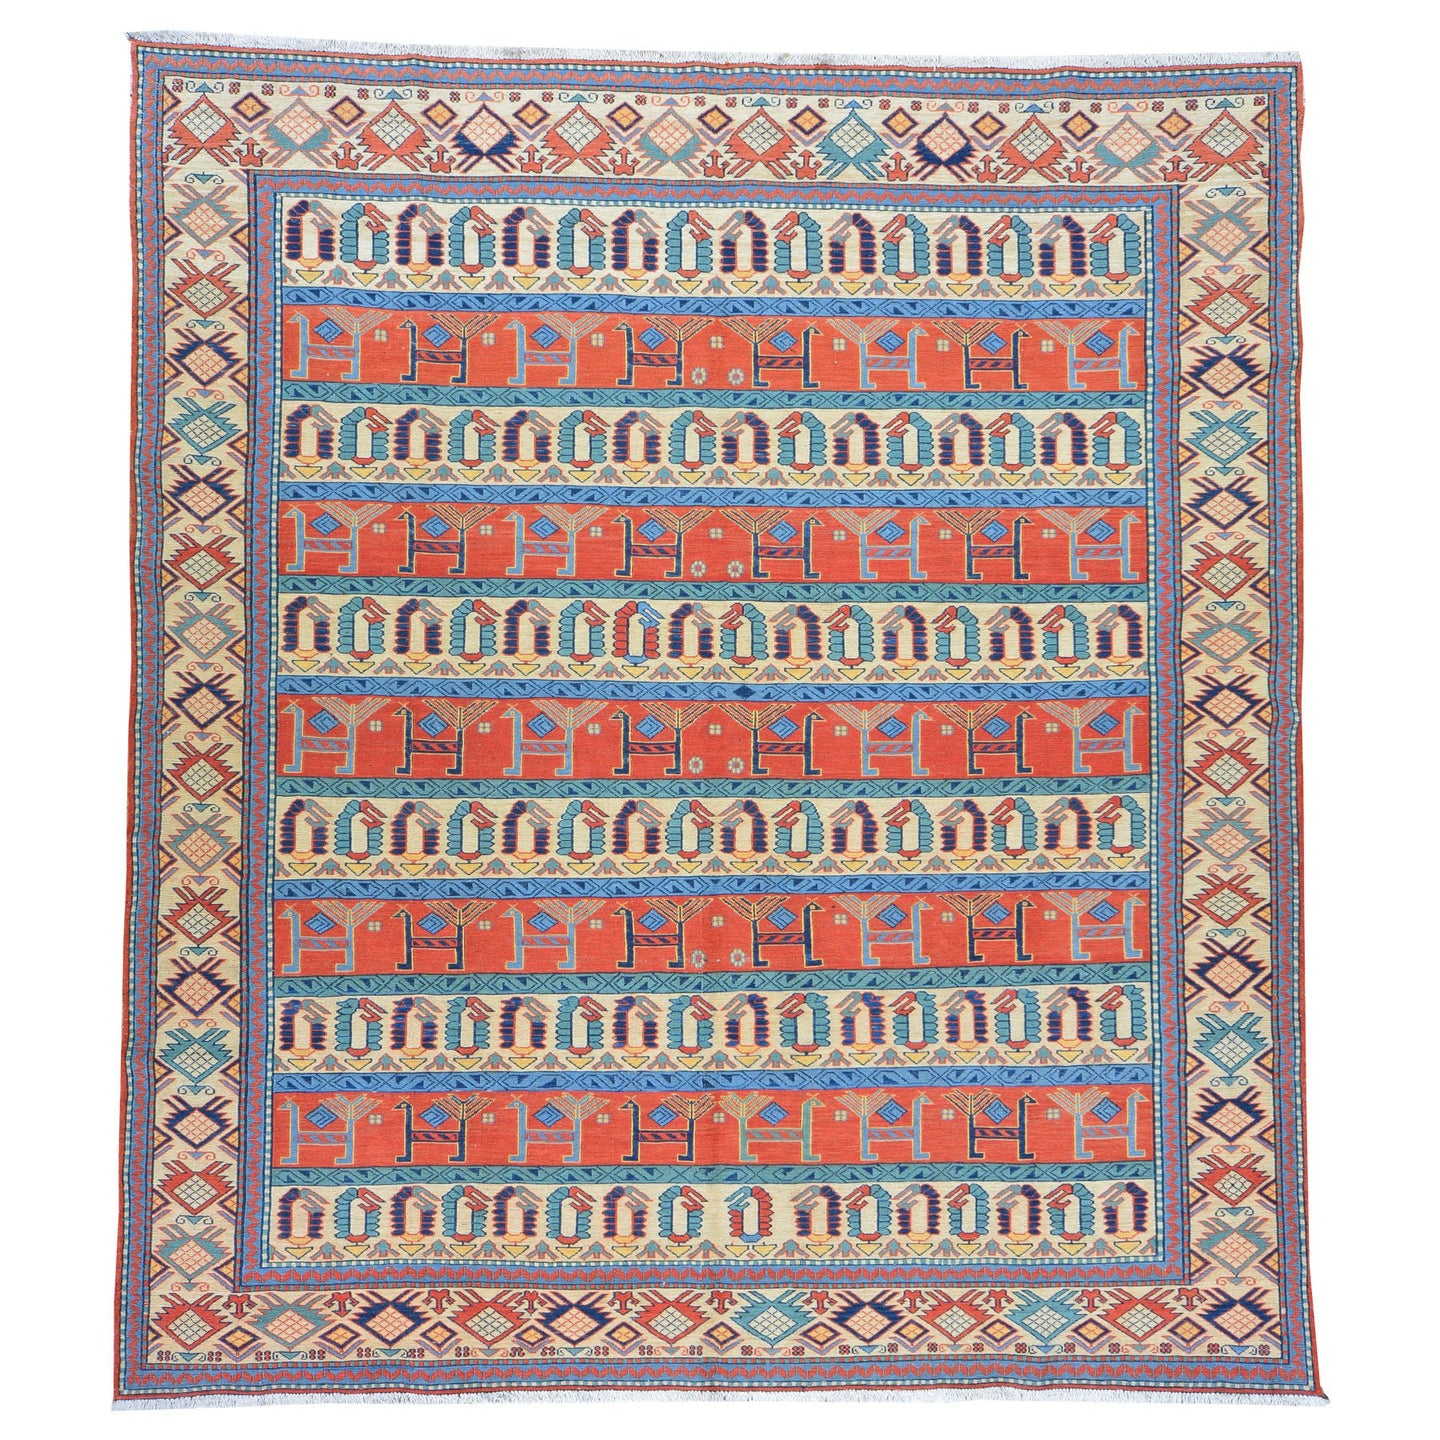 Oriental rugs, hand-knotted carpets, sustainable rugs, classic world oriental rugs, handmade, United States, interior design,  Brrsf-6057